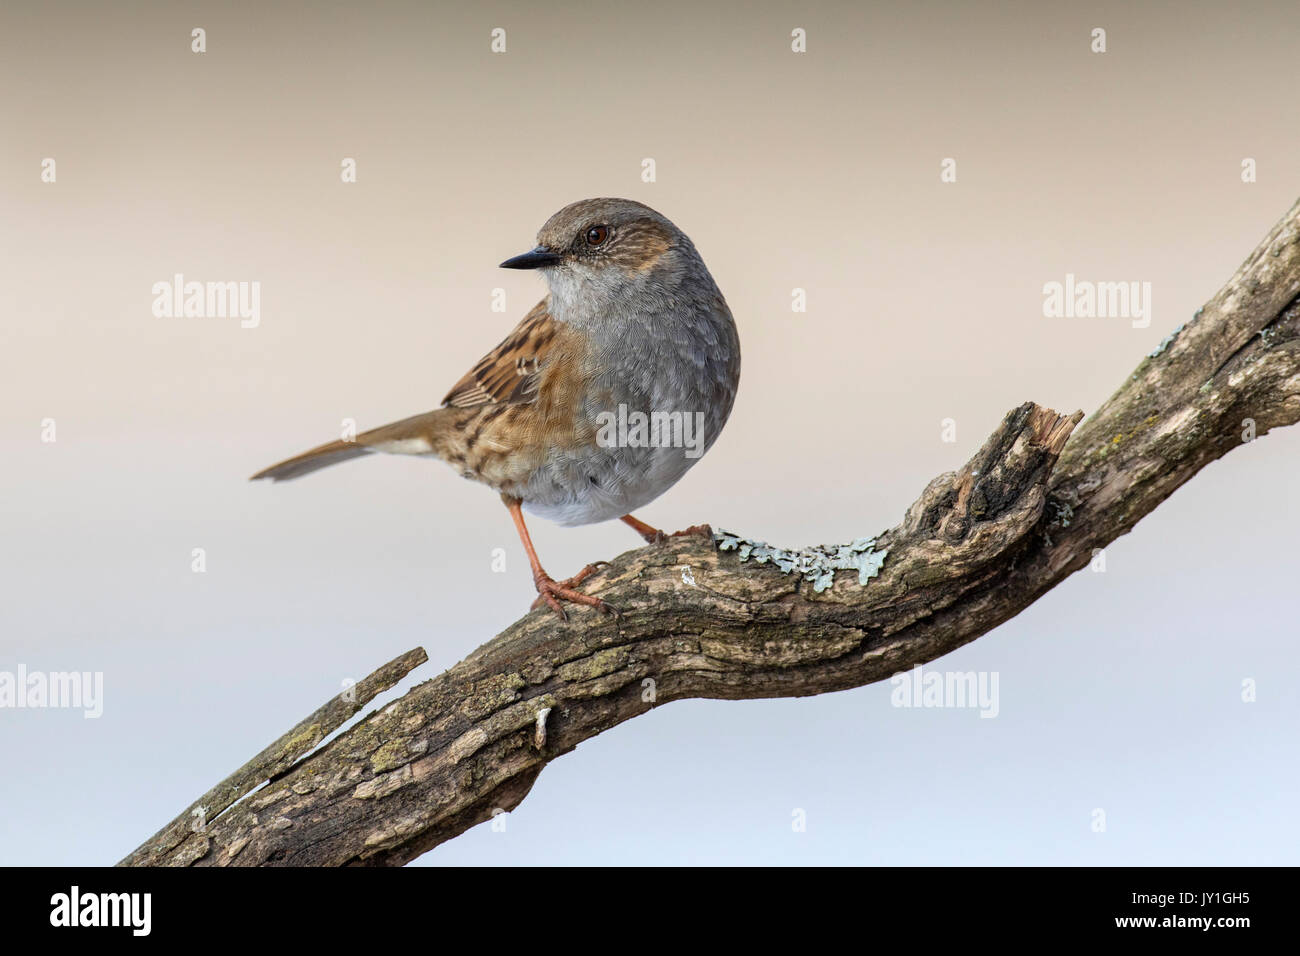 Dunnock / hedge accentor / hedge sparrow / hedge warbler (Prunella modularis) perched in tree - Stock Image